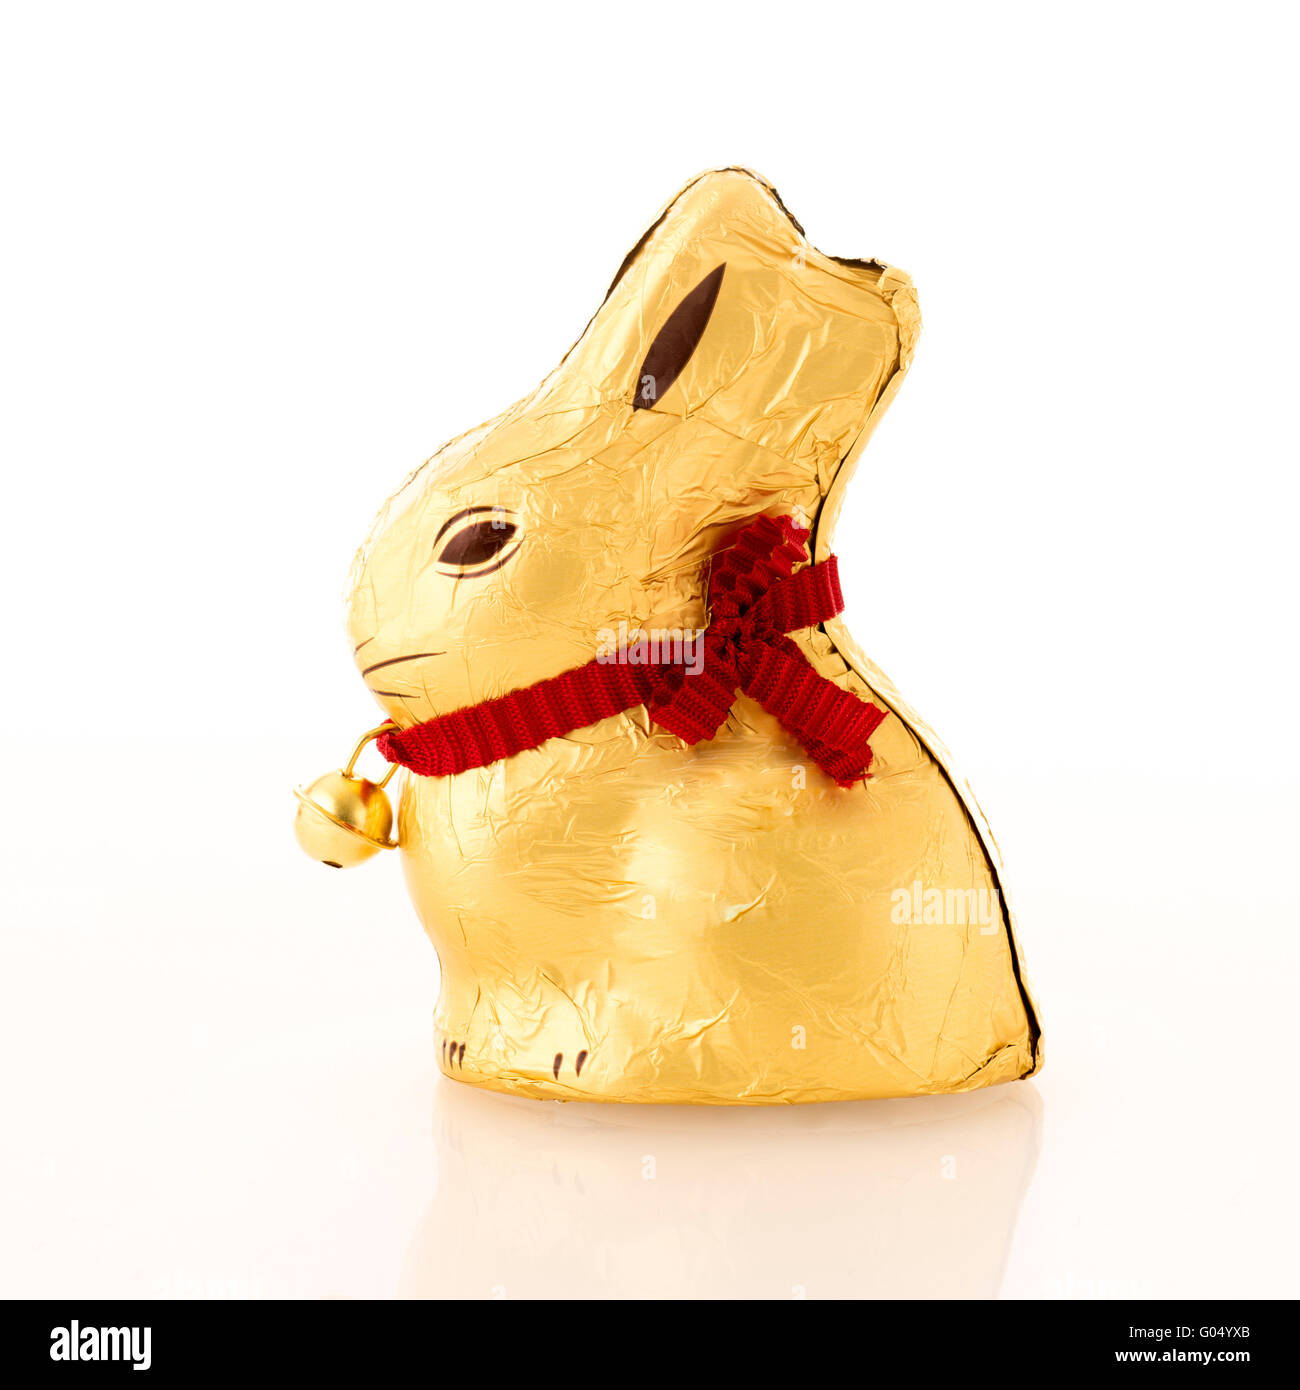 Chocolate gold foil wrapped rabbit against white background. - Stock Image